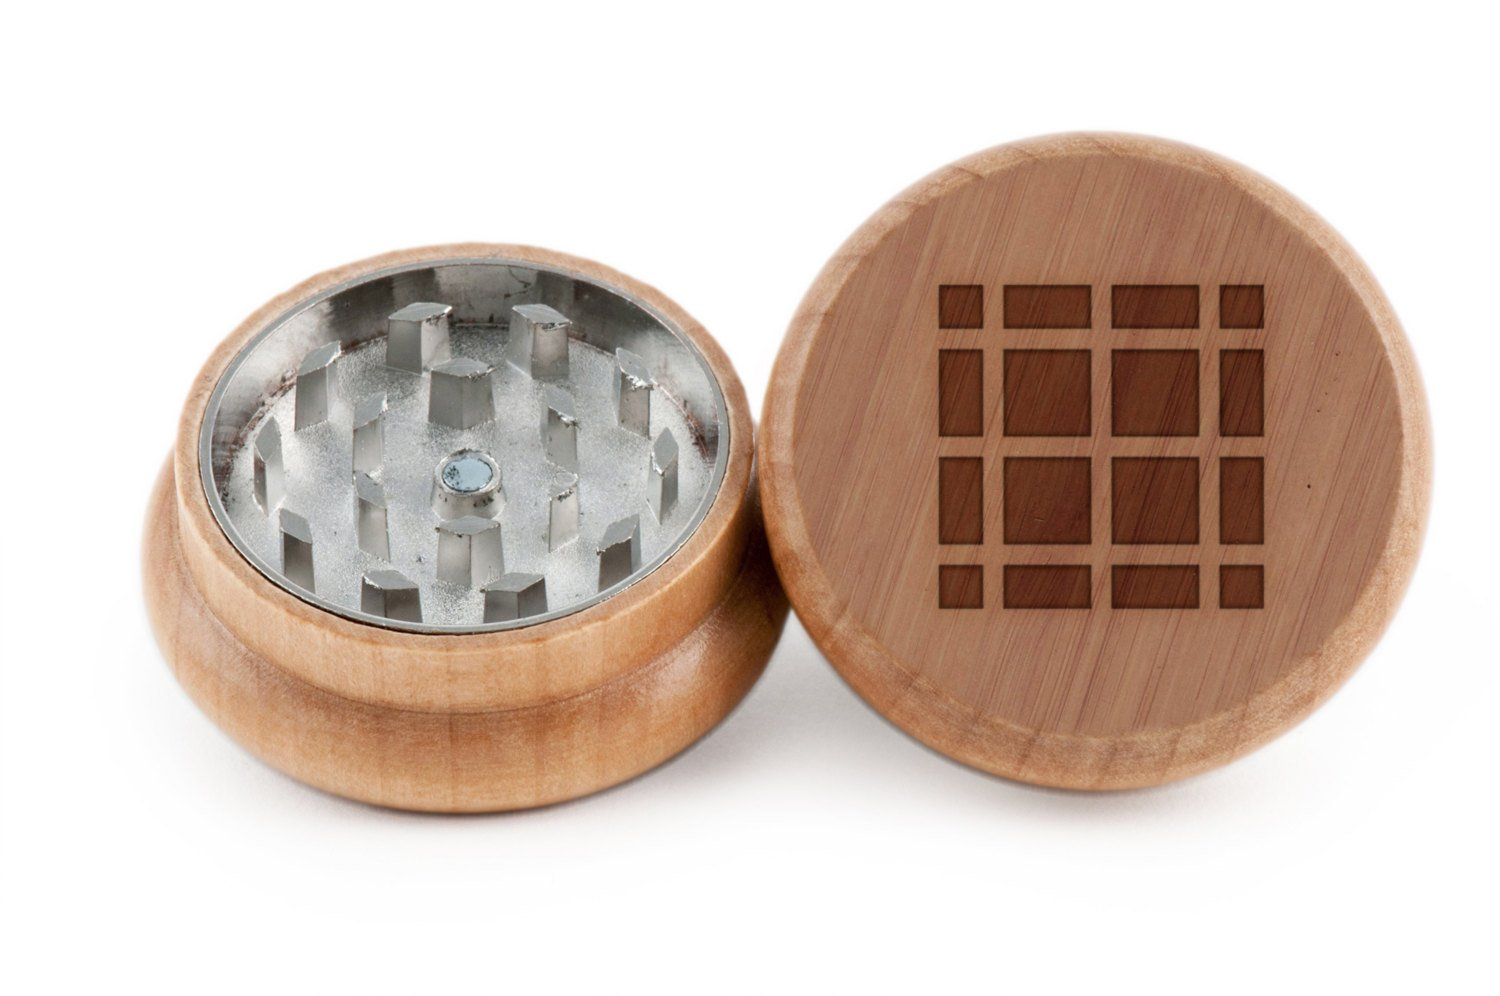 Interlocking Squares Herb and Spice Grinder - 2 Piece Wood Grinder with Laser Etched Designs - Made with Oak (2 Inches) GrindCandy